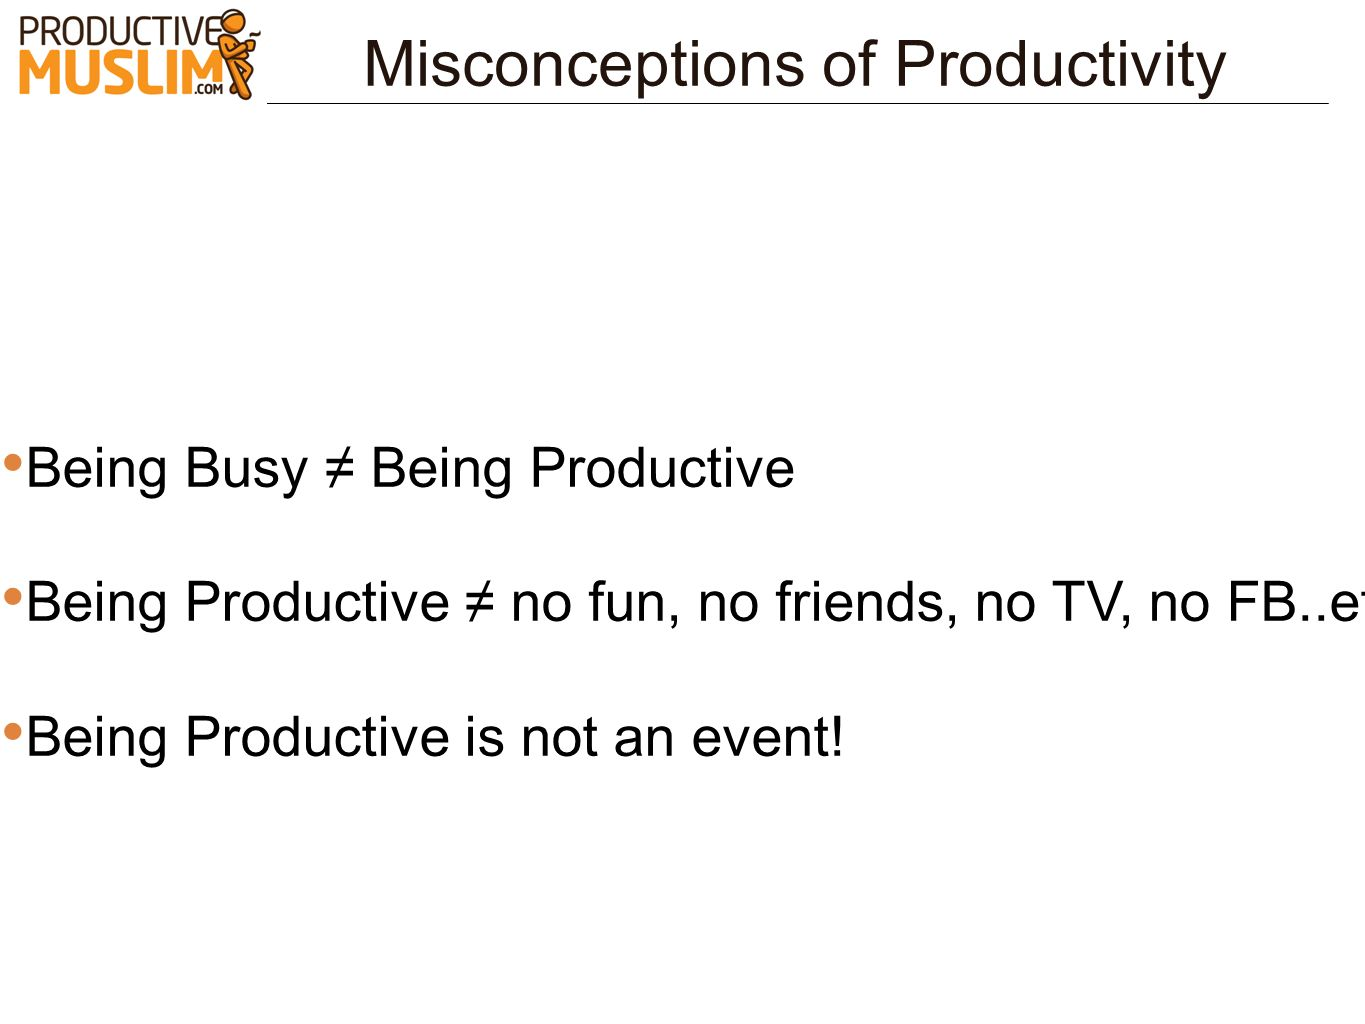 Misconceptions of Productivity